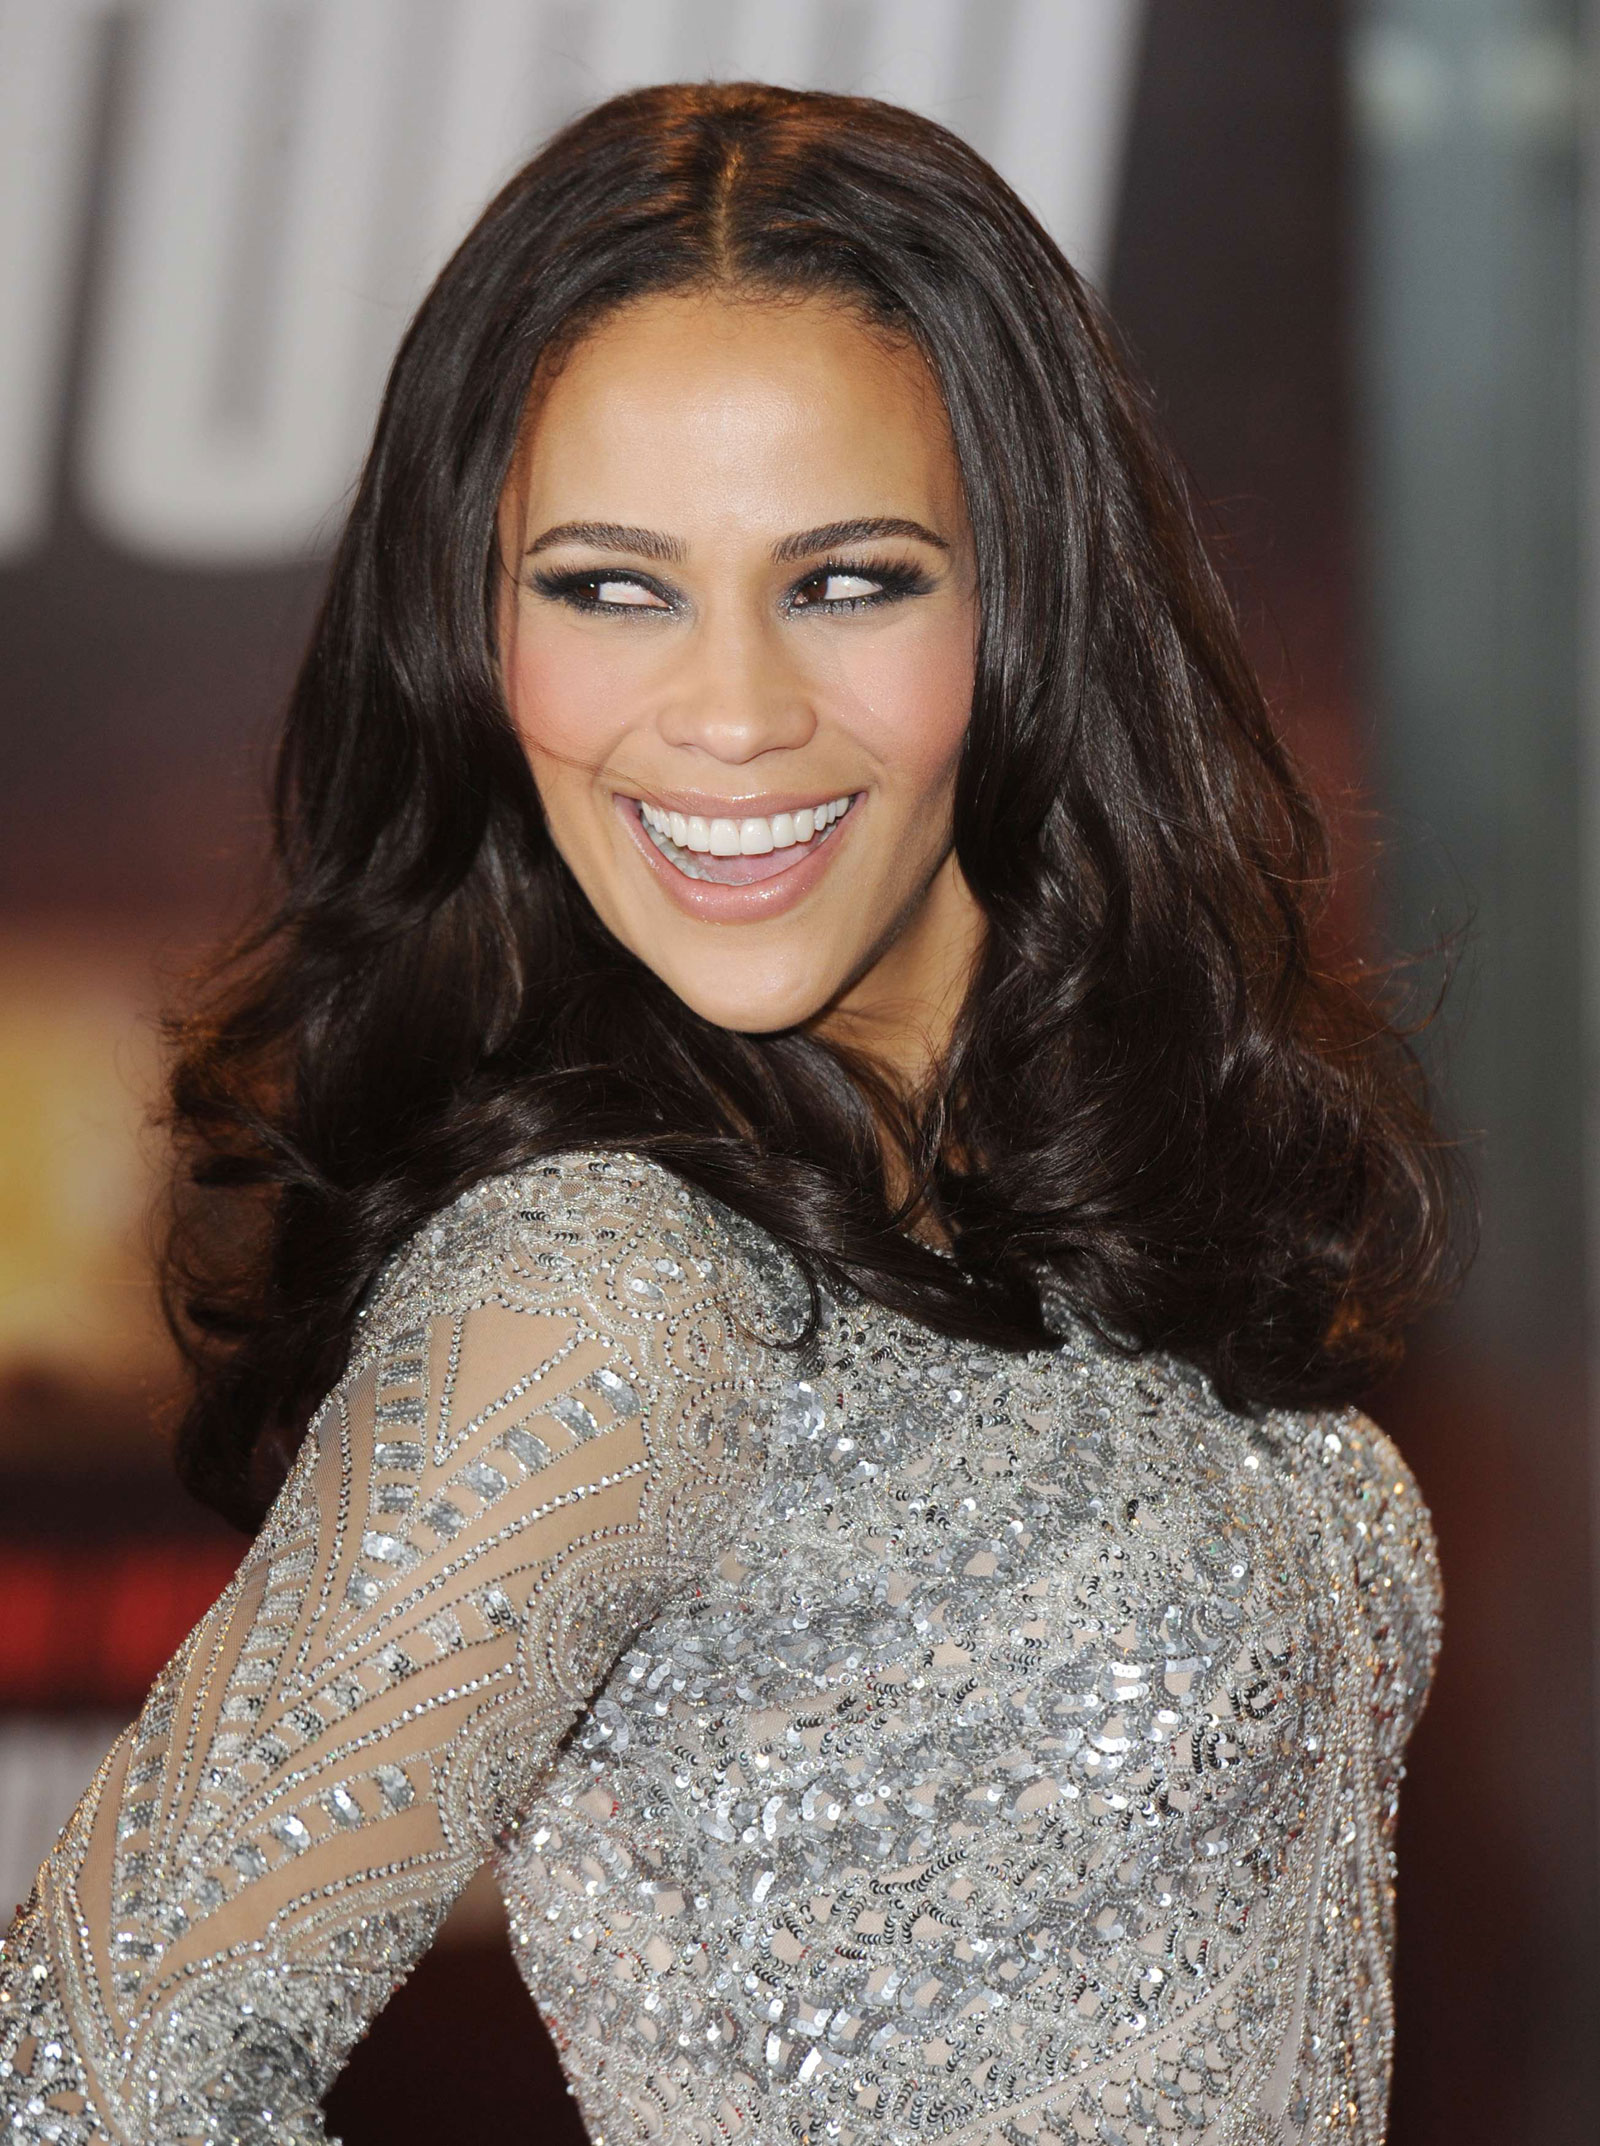 Paula-Patton-at-Mission-Impossible-Ghost-Protocol-Premiere-in-London-2.jpg